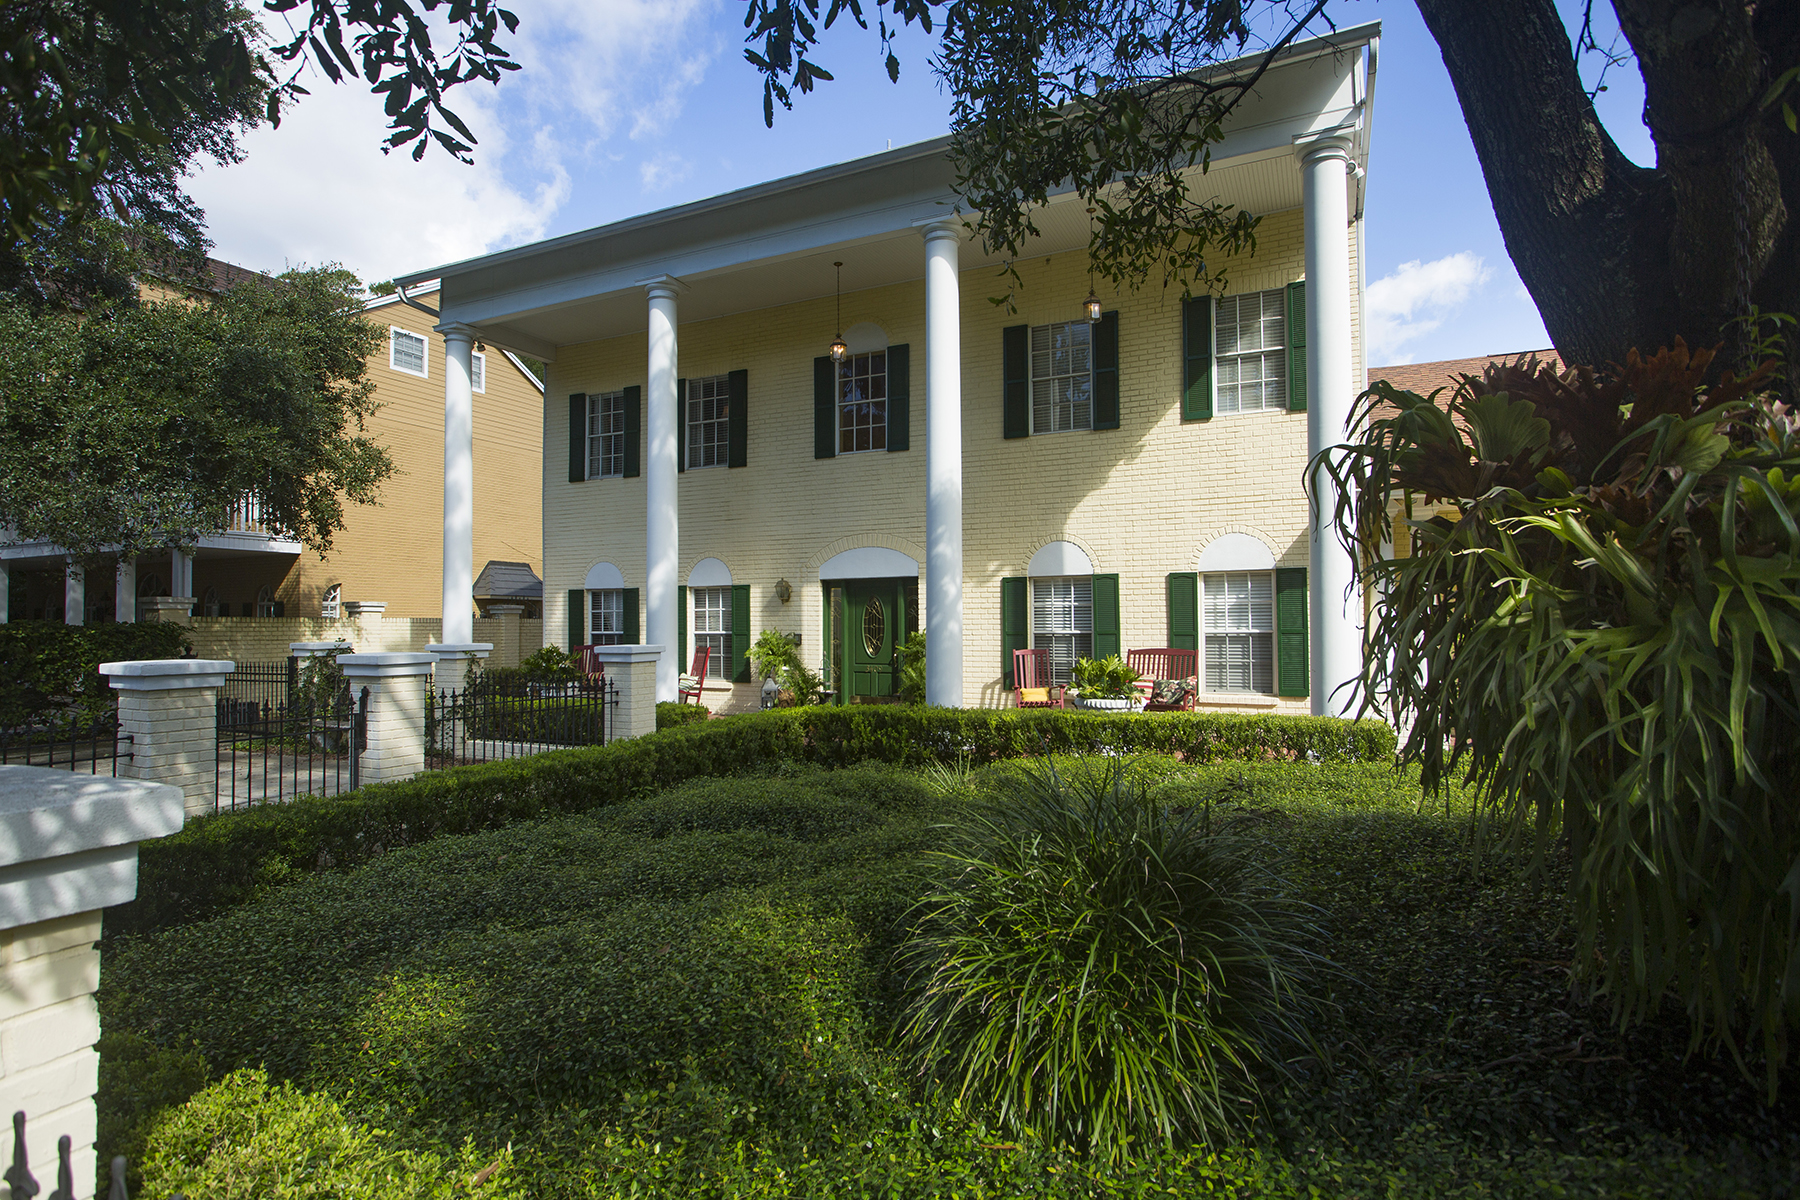 Single Family Home for Sale at SOUTH TAMPA 3409 W Mckay Ave Tampa, Florida, 33609 United States